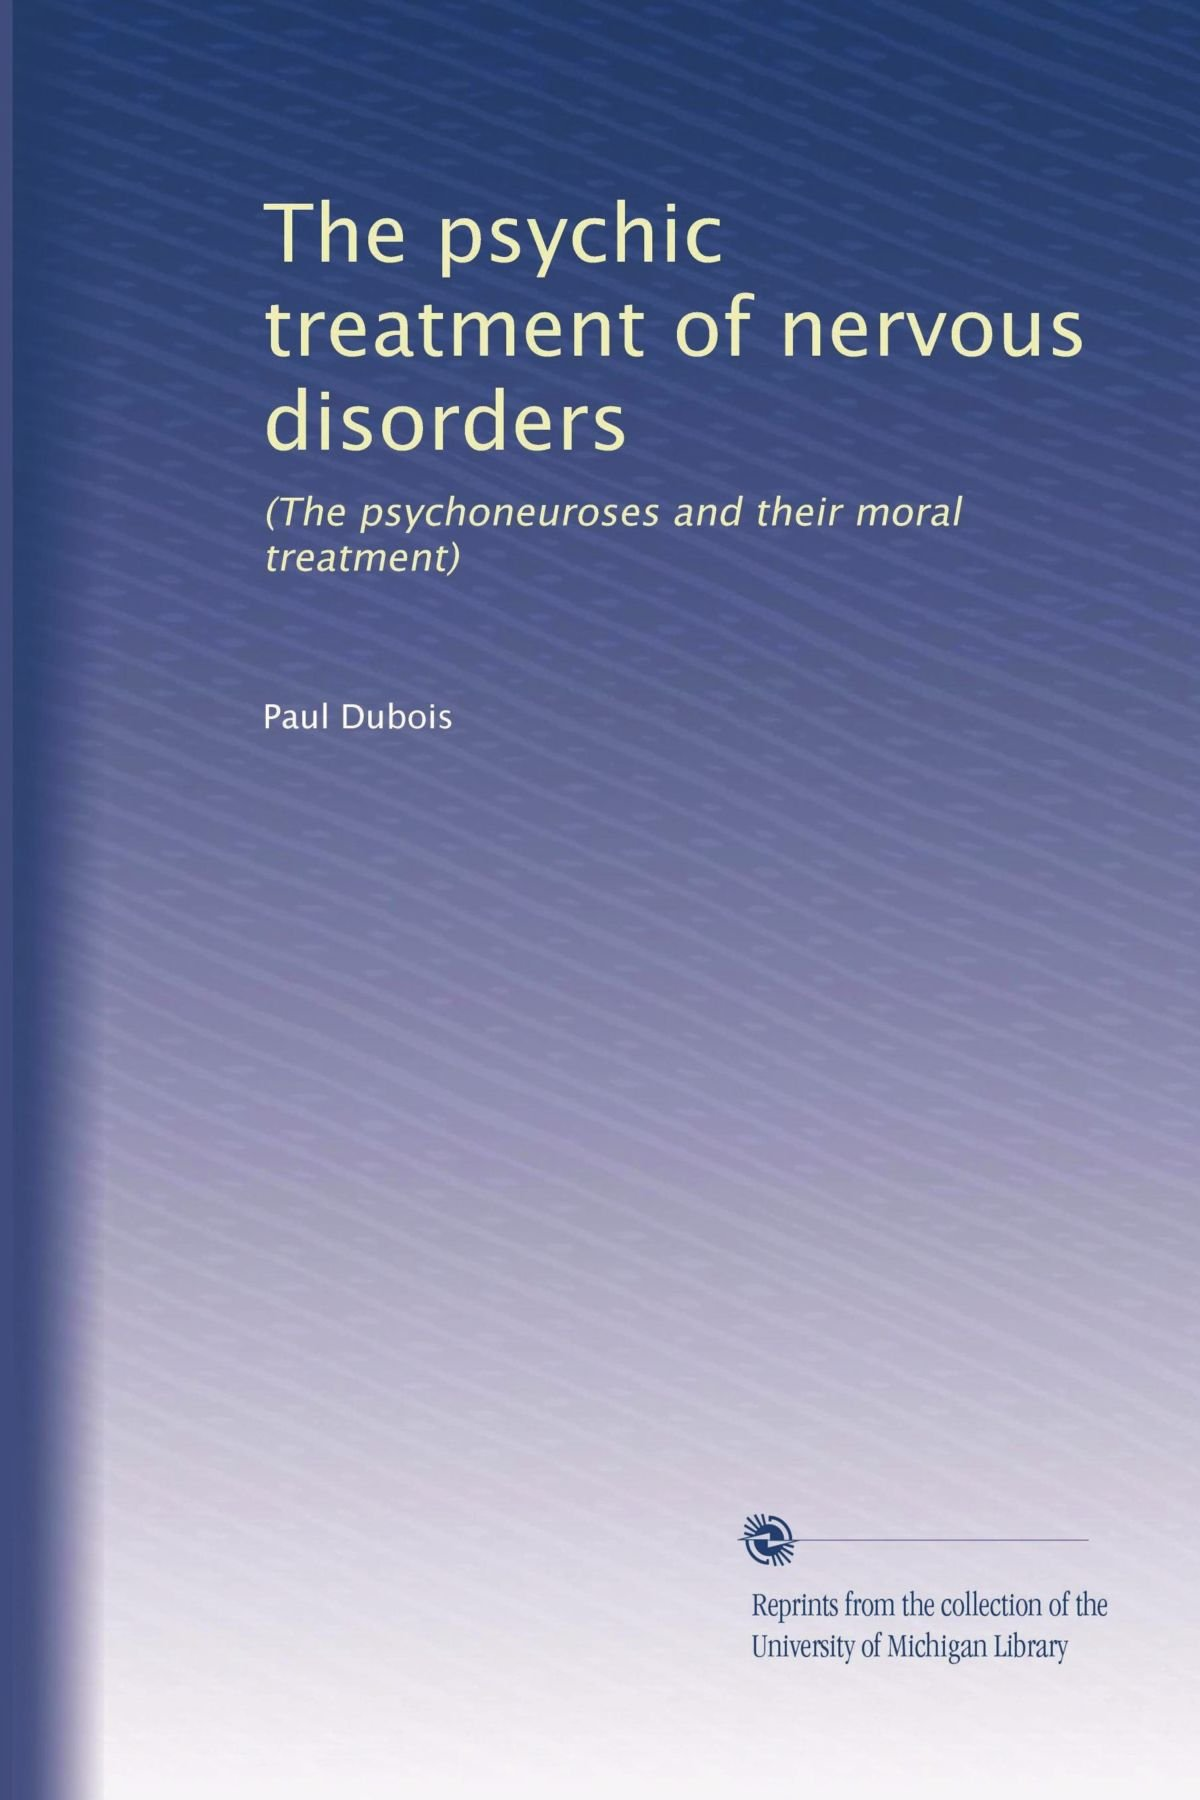 Download The psychic treatment of nervous disorders: (The psychoneuroses and their moral treatment) ebook